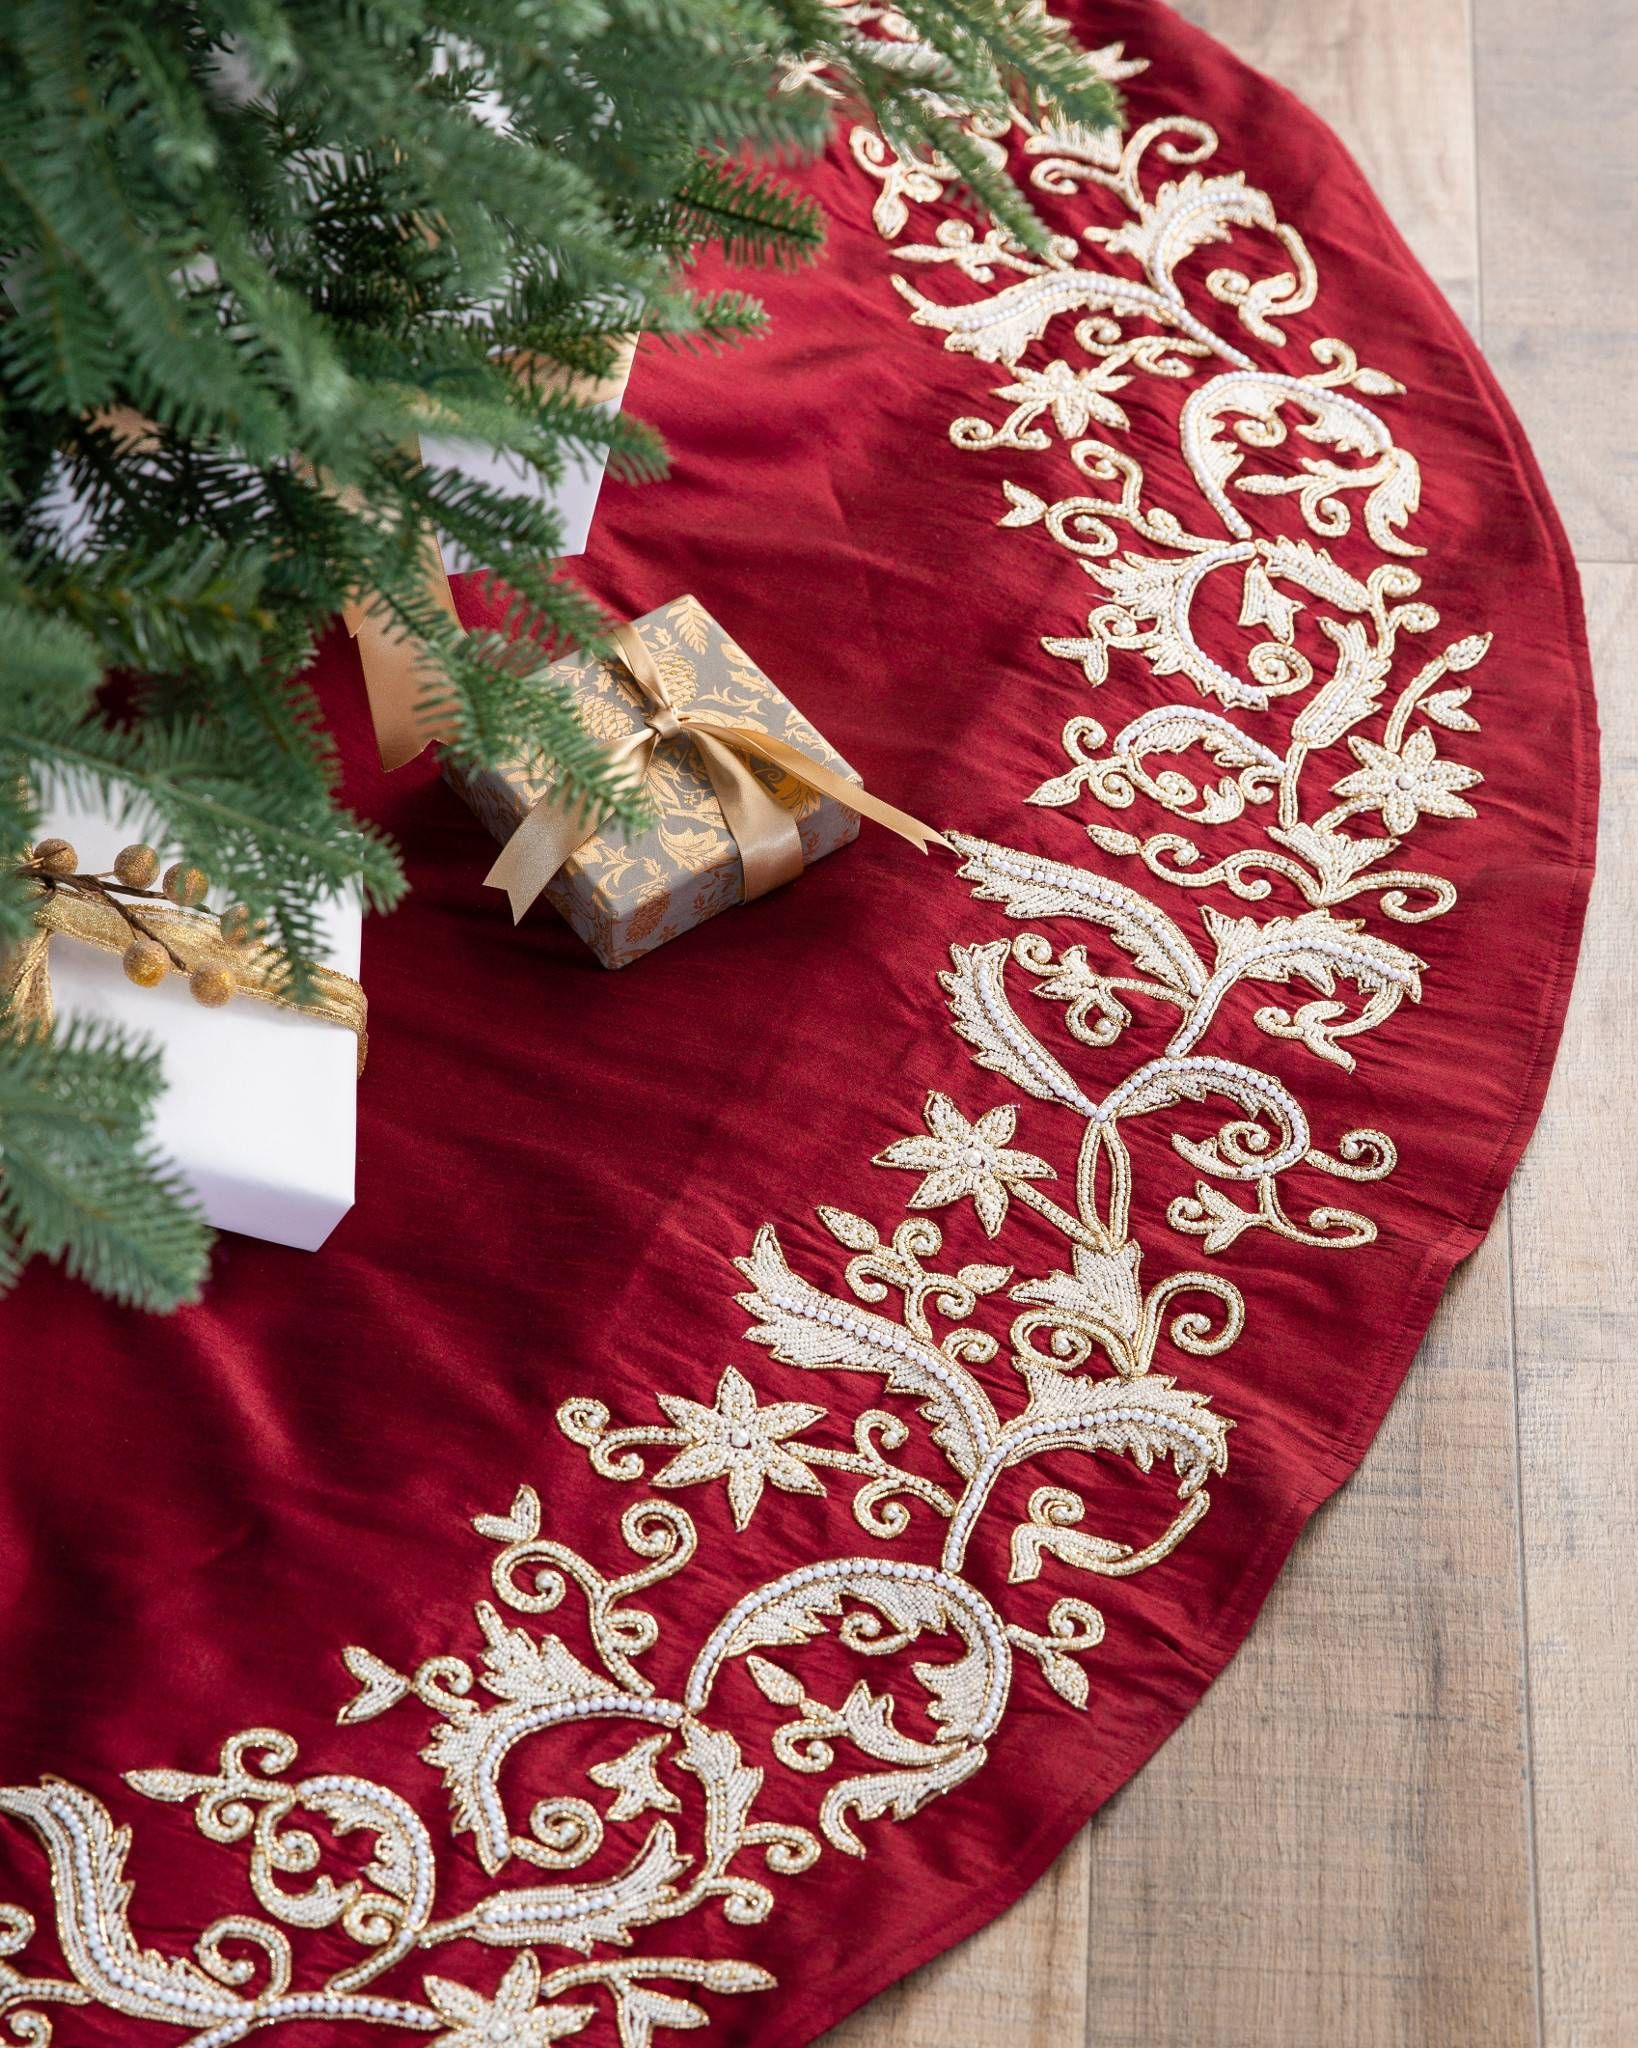 Hand Painted Gingerbread House Christmas Tree Skirt